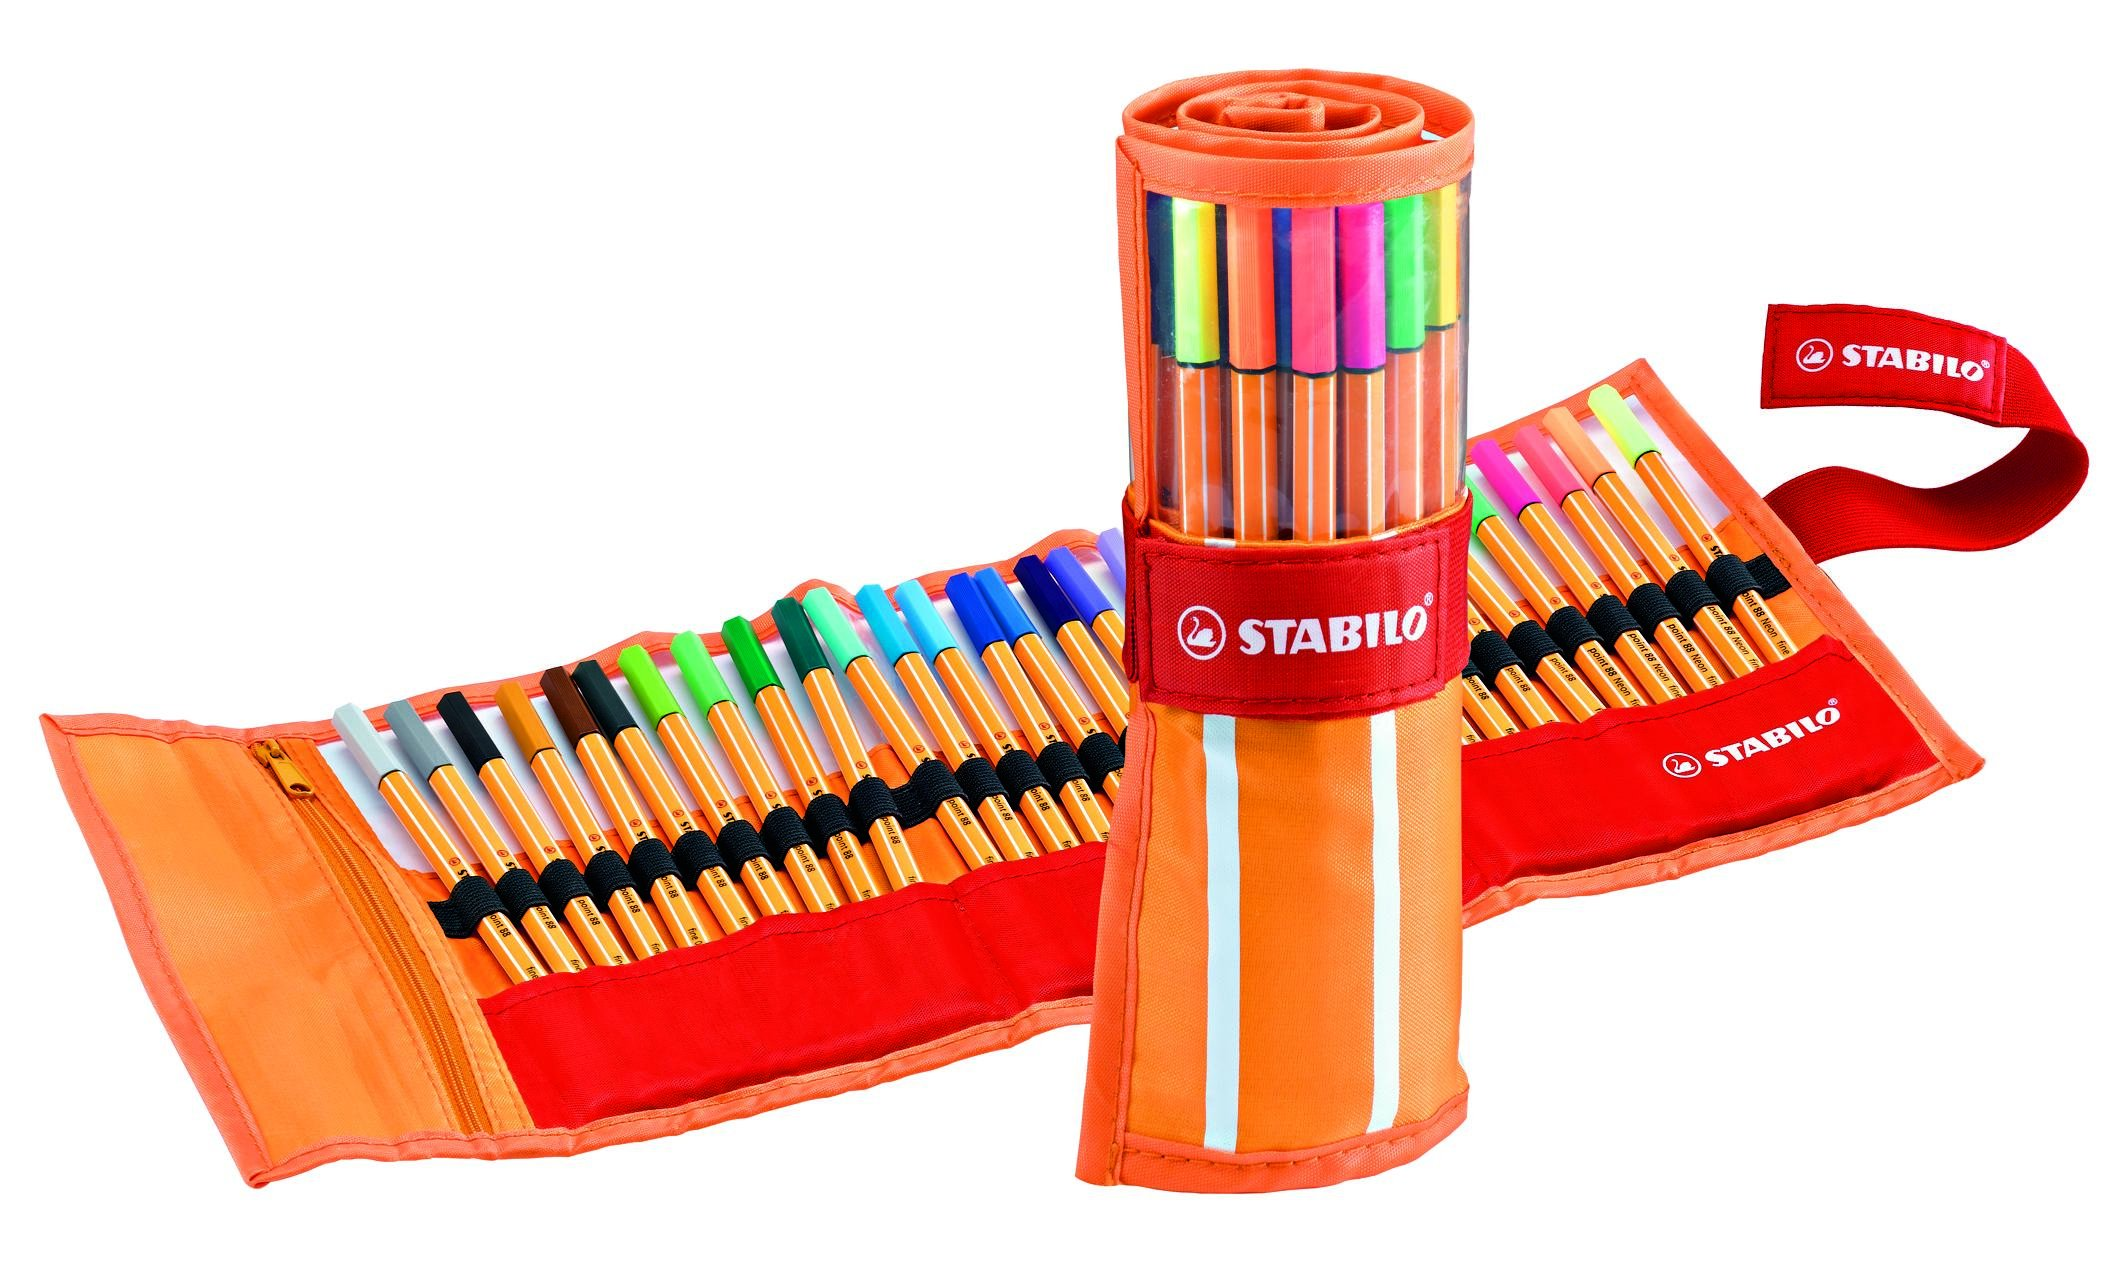 Stabilo Point 88 Fineliner Pens, 0.4 mm - 30-Color Rollercase Set by STABILO